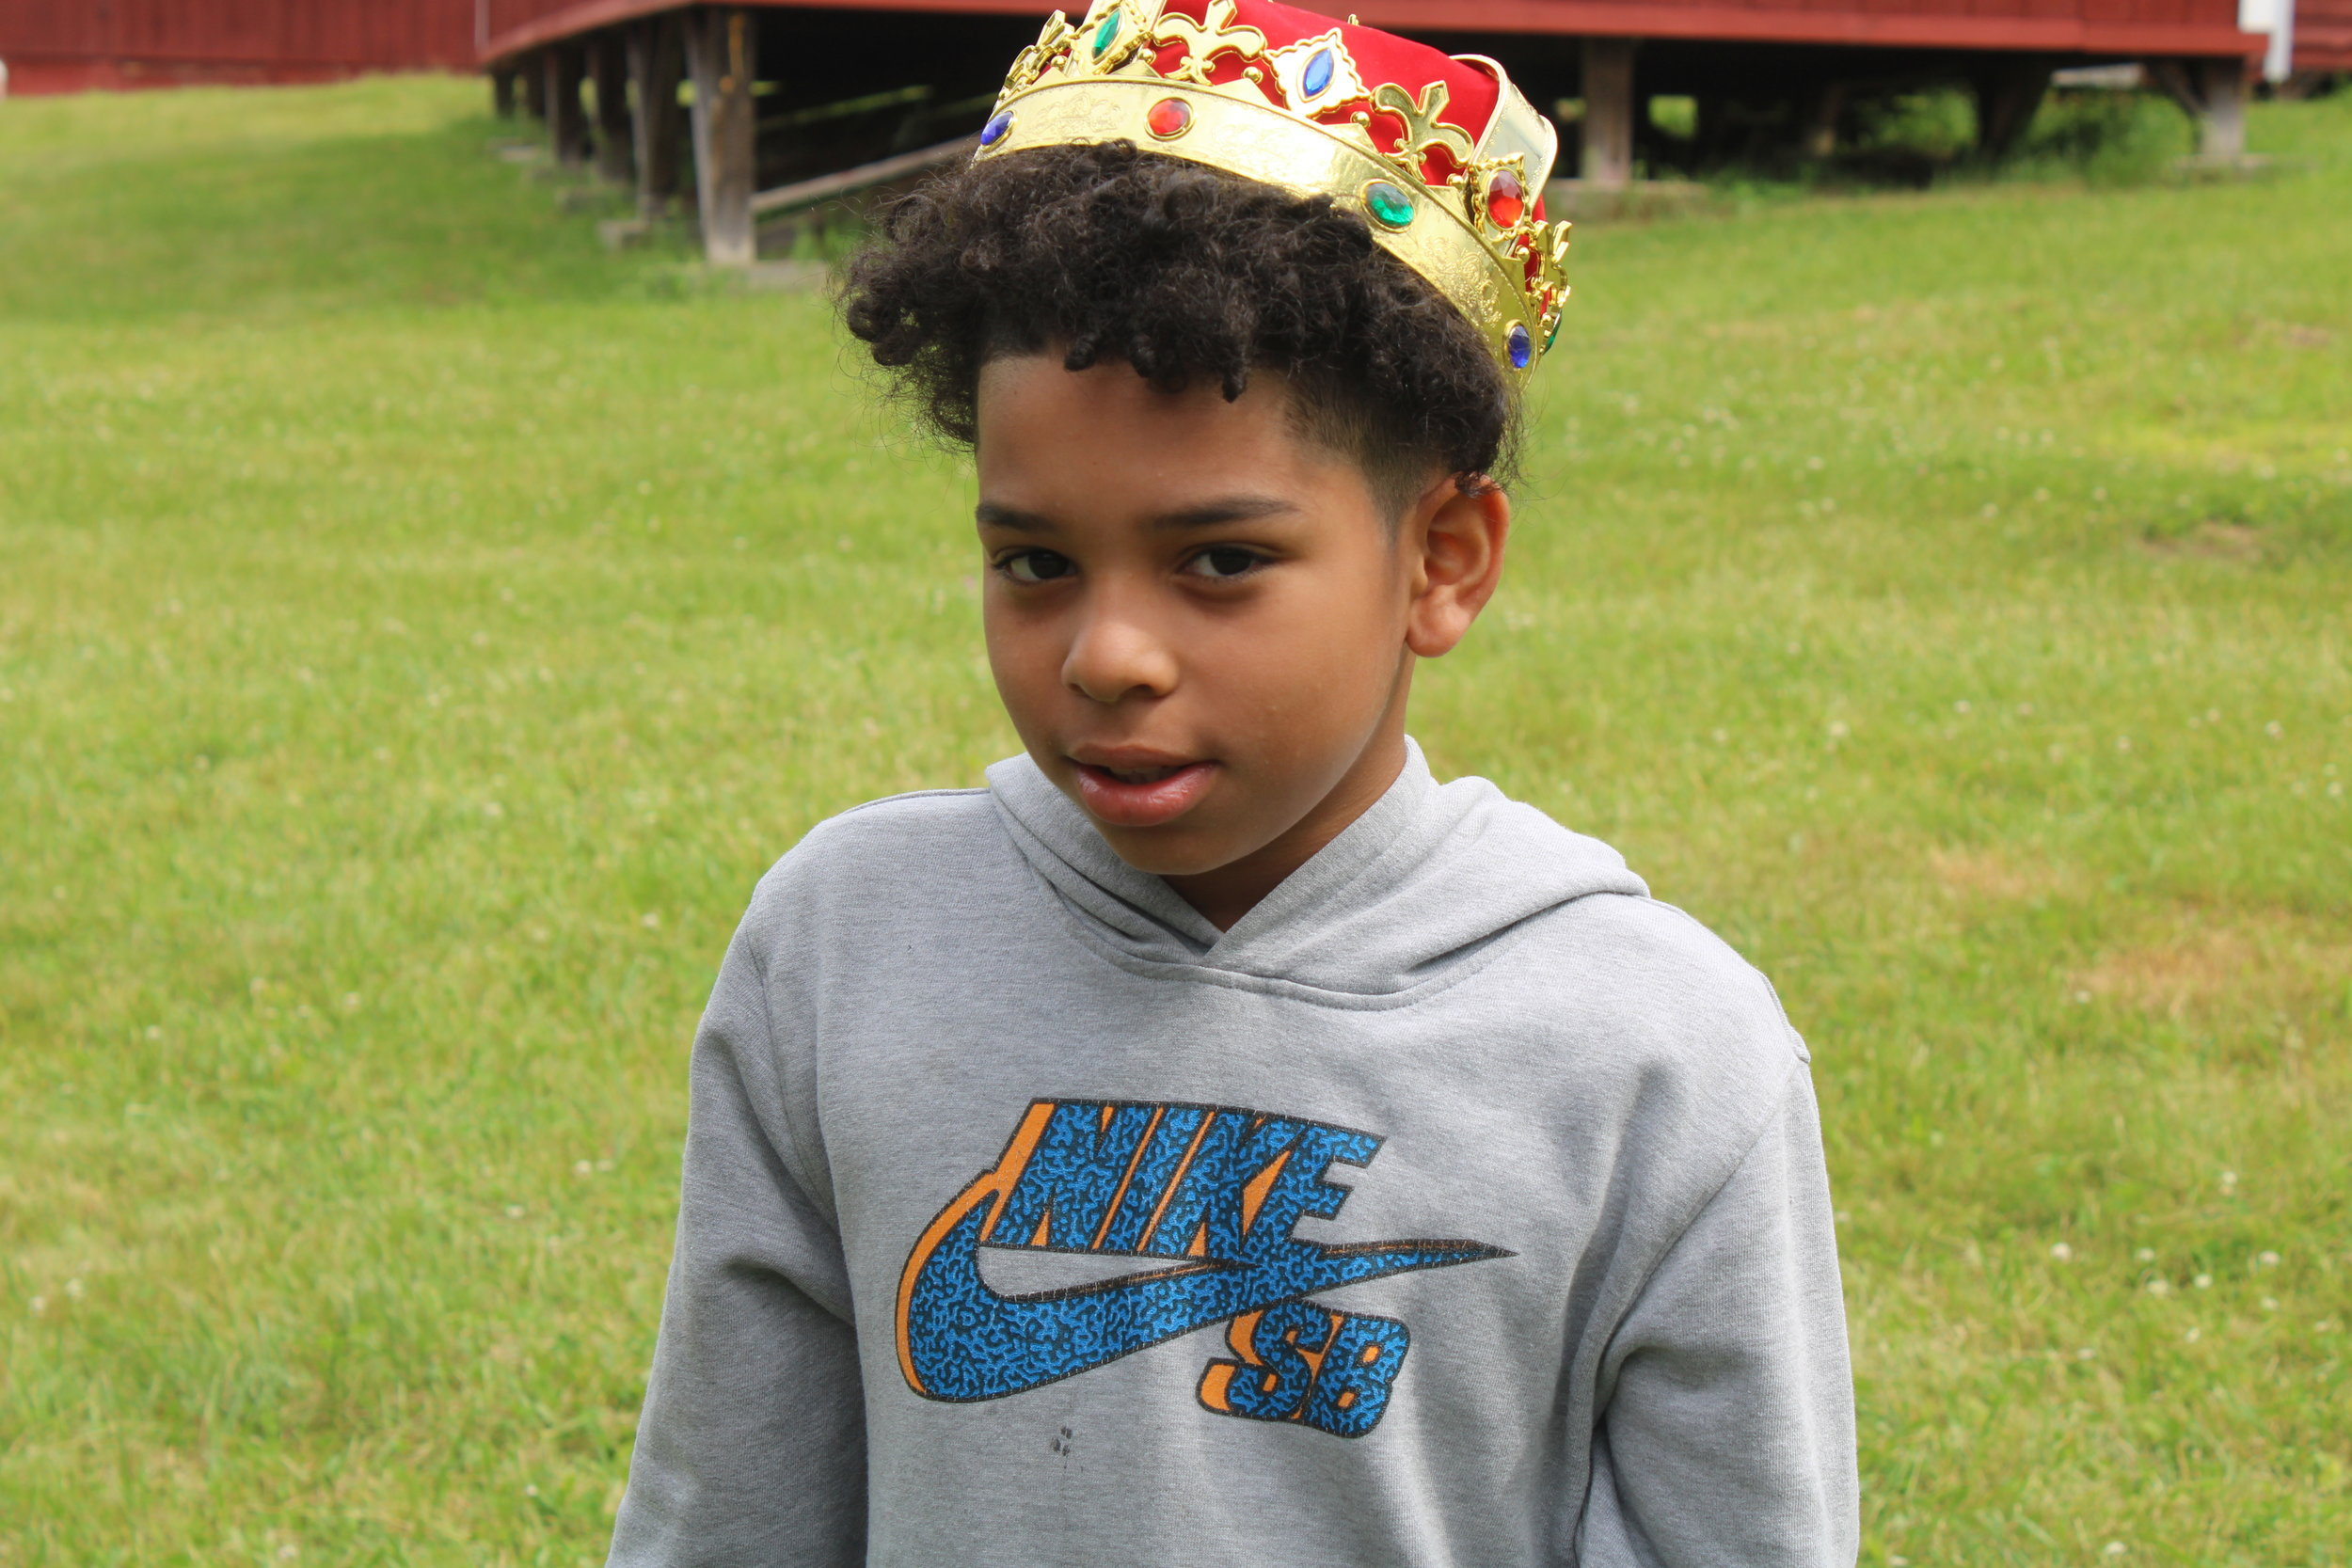 camper of the day boy crown.jpeg